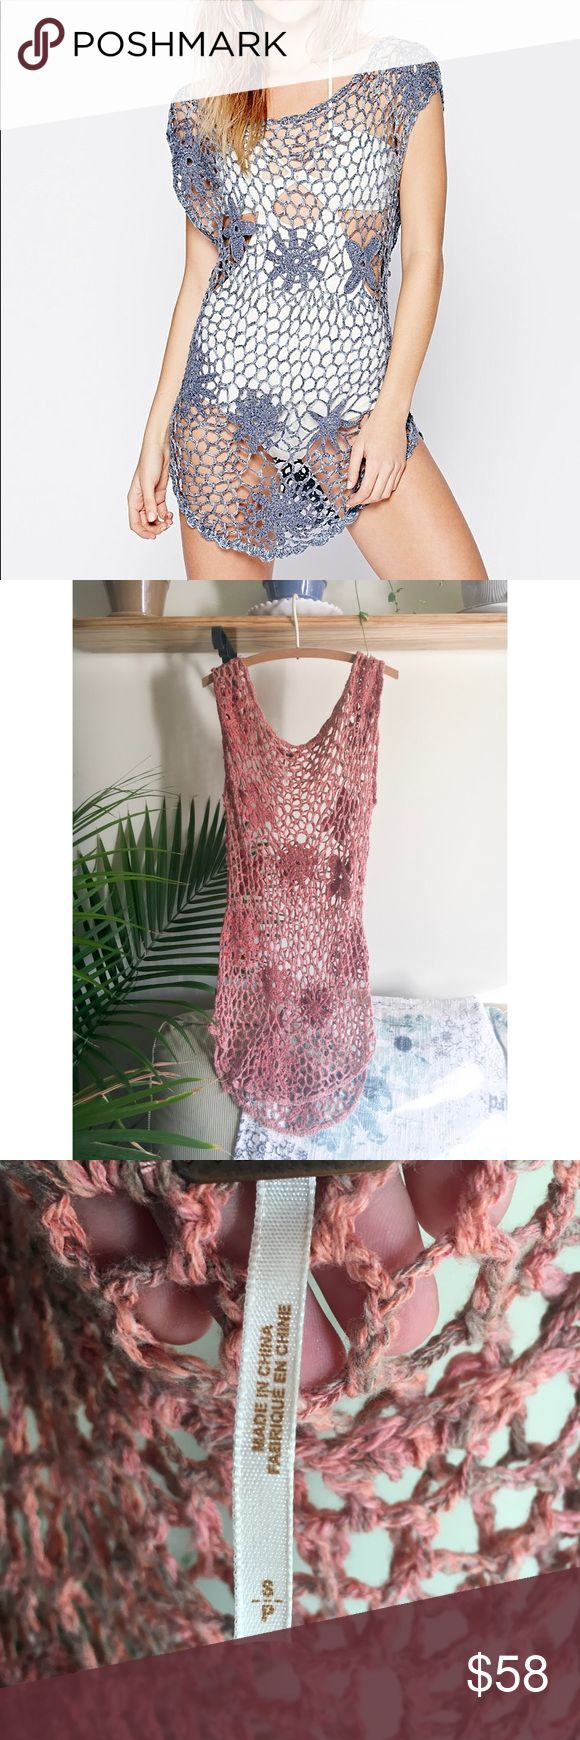 Free People Open Stitch Beach Tunic Free People   Crochet Knit Beach Tunic  Color Pink   Size S  This is an old Rare Free People piece!   Worn once/excellent condition   Wear as a beach cover up or with a slip underneath!! Free People Dresses Mini